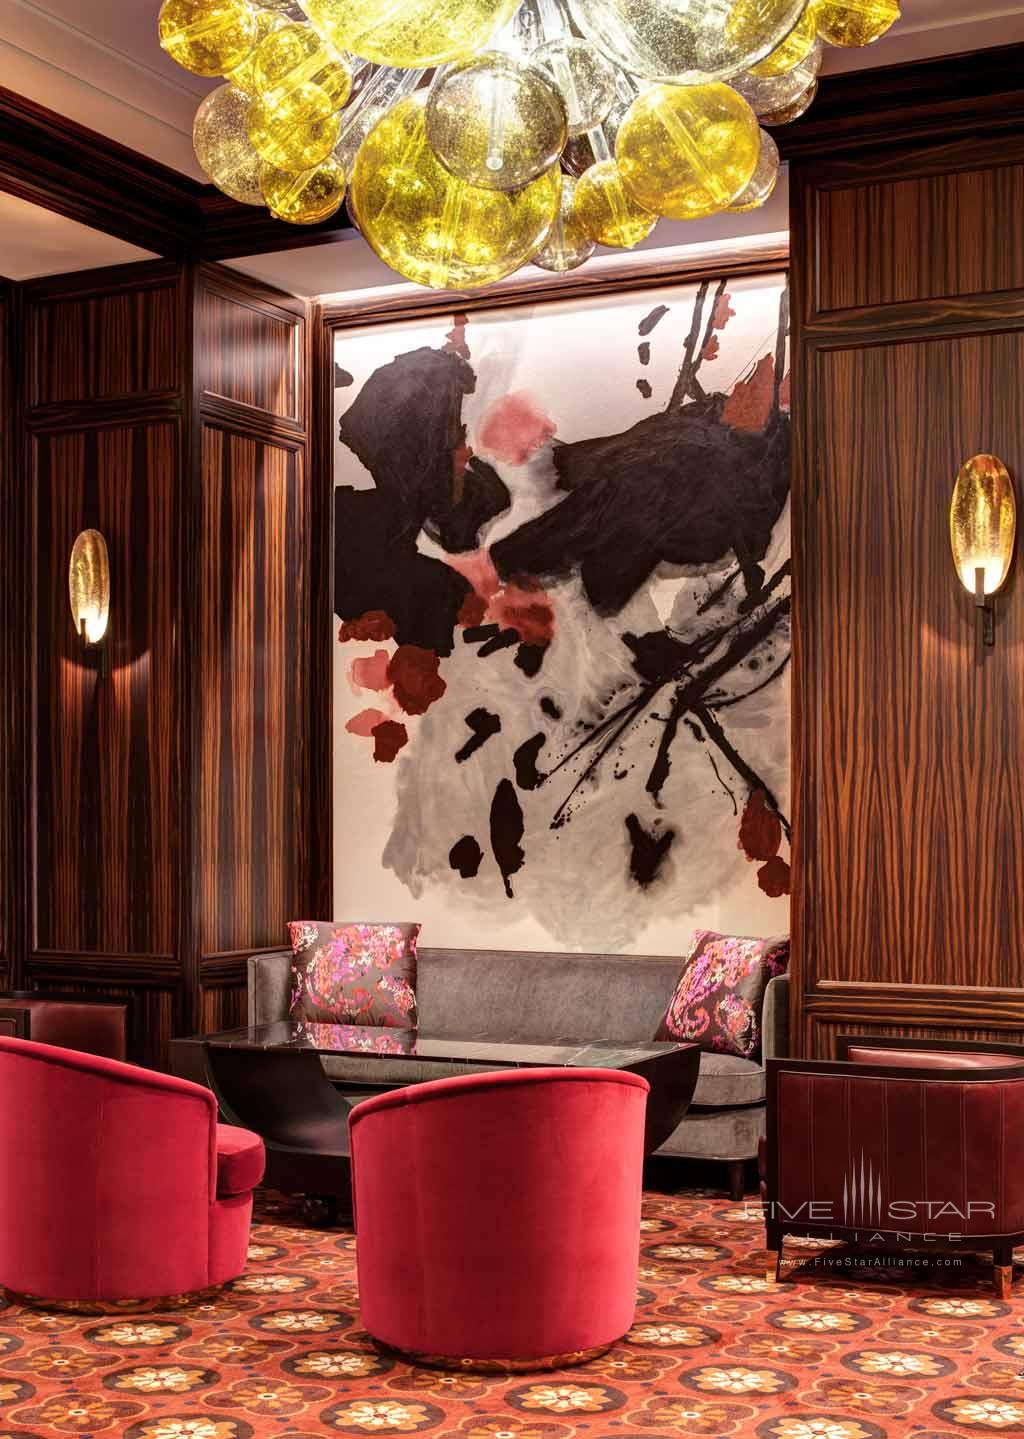 Lobby and Lounge Seating Area at The Lotte New York Palace, New York, NY